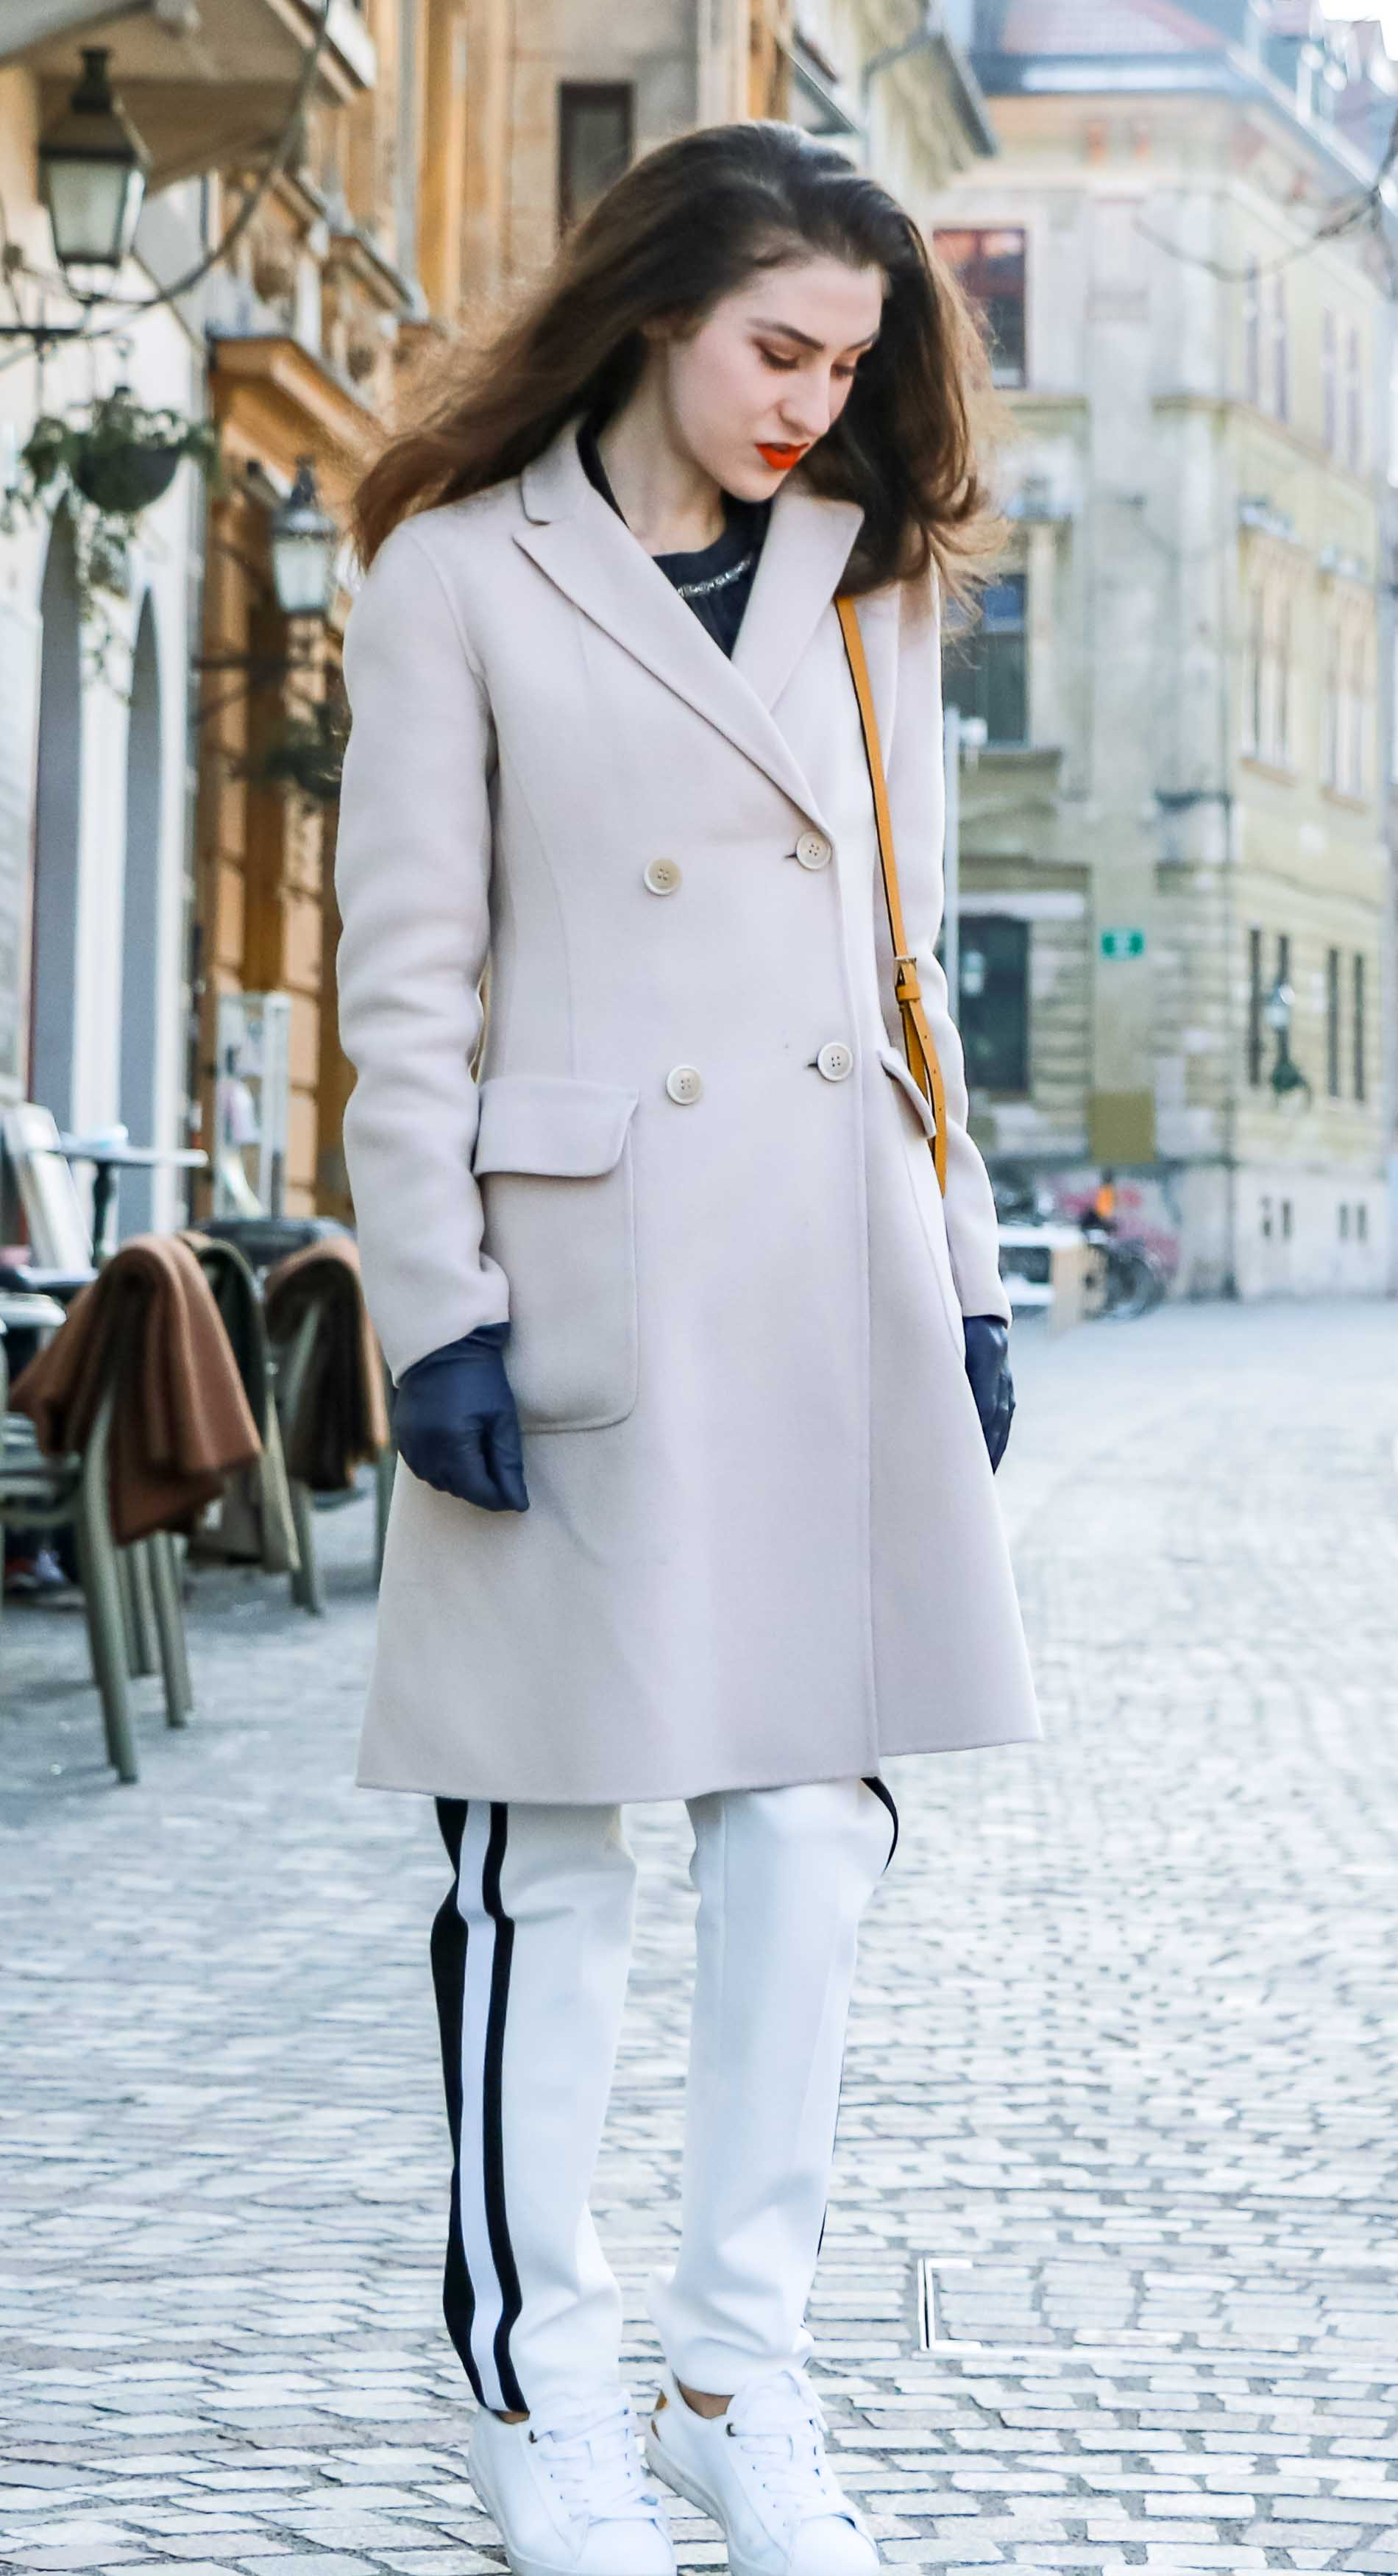 - Fashion Blogger Veronika Lipar of Brunette from Wall Street dressed in white track pants with black side stripe from Escada, black silk blouse, off-white pastel double breasted coat from Weekend Max Mara, white leather sneakers from Diesel, yellow shoulder bag from Escada while standing on the street in Ljubljana